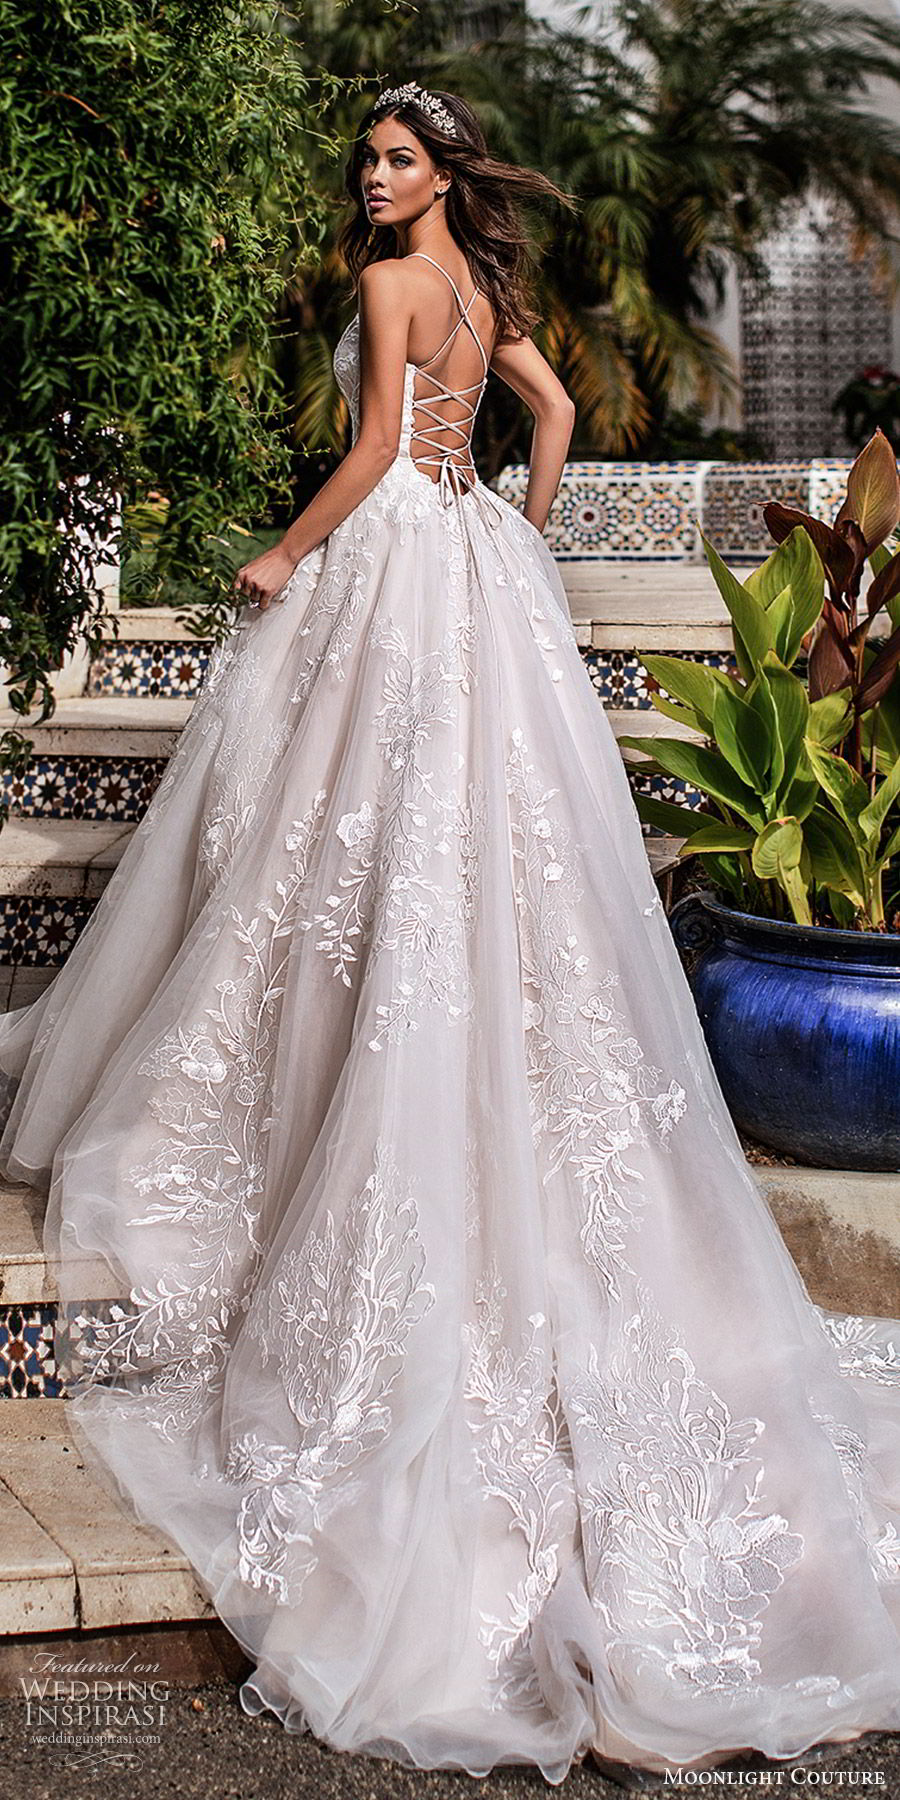 moonlight couture fall 2019 bridal sleeveless thin straps split sweetheart neckline fully embellished a line ball gown wedding dress (9) romantic princess chapel train open back bv